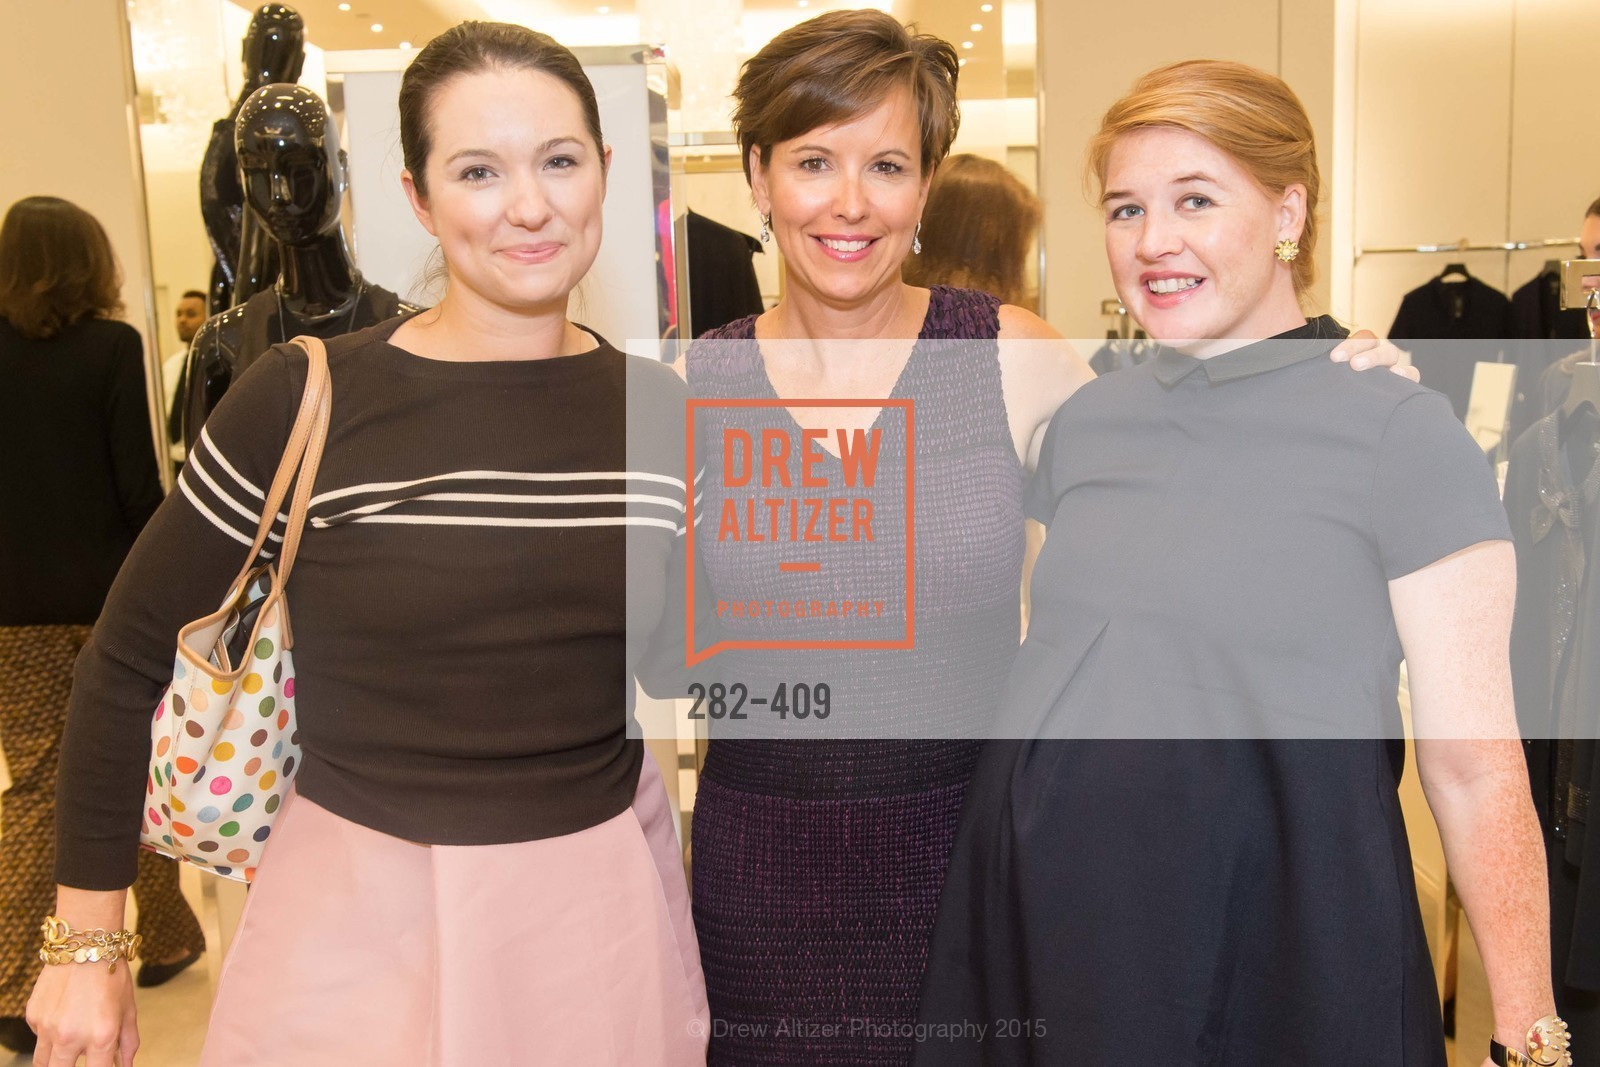 Genevieve Weeks, Kate Smith, Vanessa Welstead, St. John in Conversation with Exceptional Women benefiting Raphael House of San Francisco, St. John Boutique, October 22nd, 2015,Drew Altizer, Drew Altizer Photography, full-service agency, private events, San Francisco photographer, photographer california